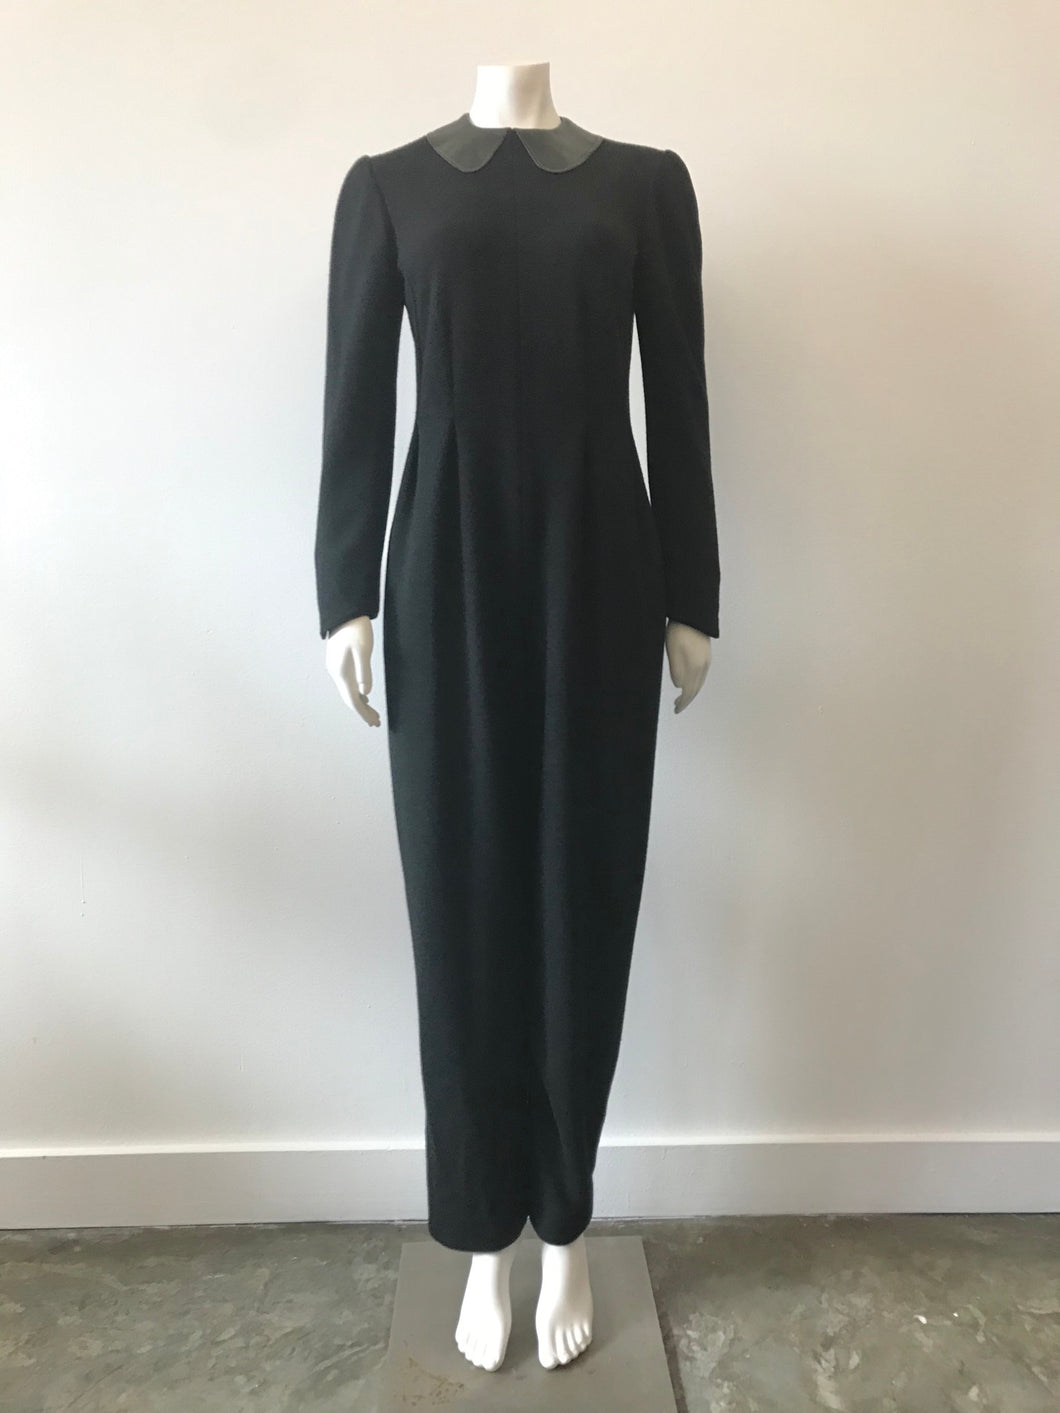 1980's Black Wool Jumpsuit w/ Leather Collar by Geoffrey Beene